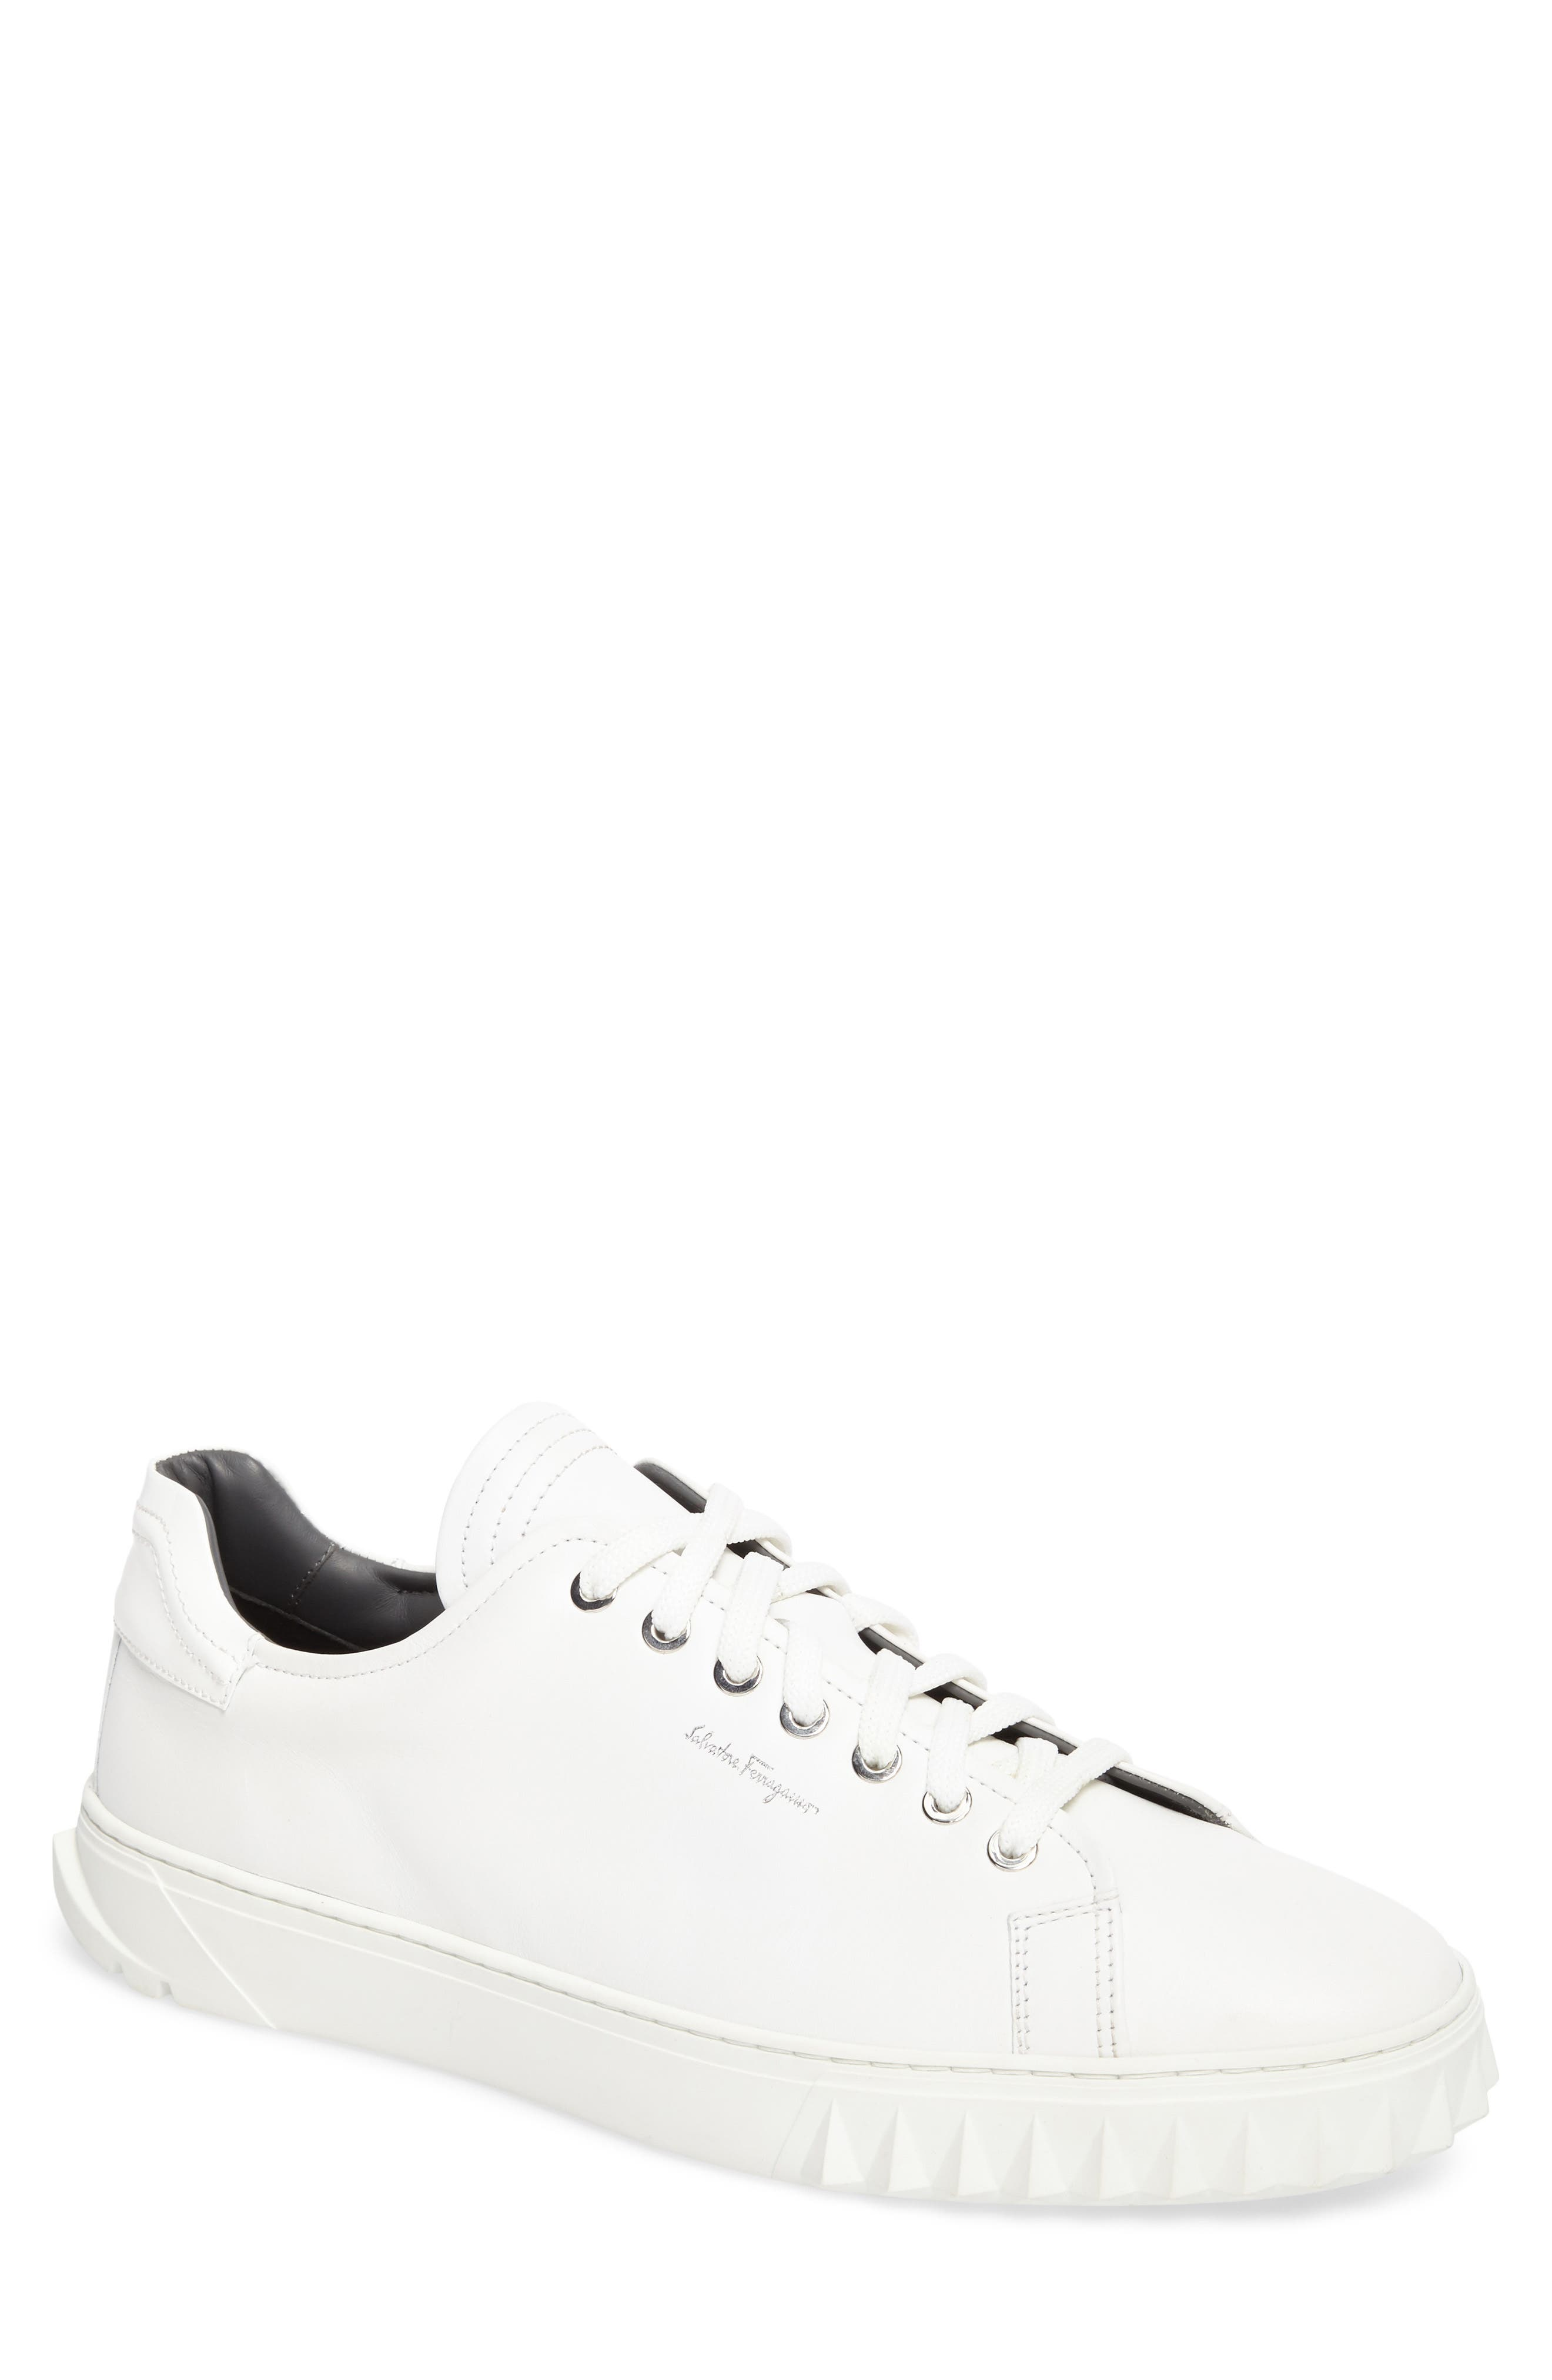 Alternate Image 1 Selected - Salvatore Ferragamo Cube Sneaker (Men)